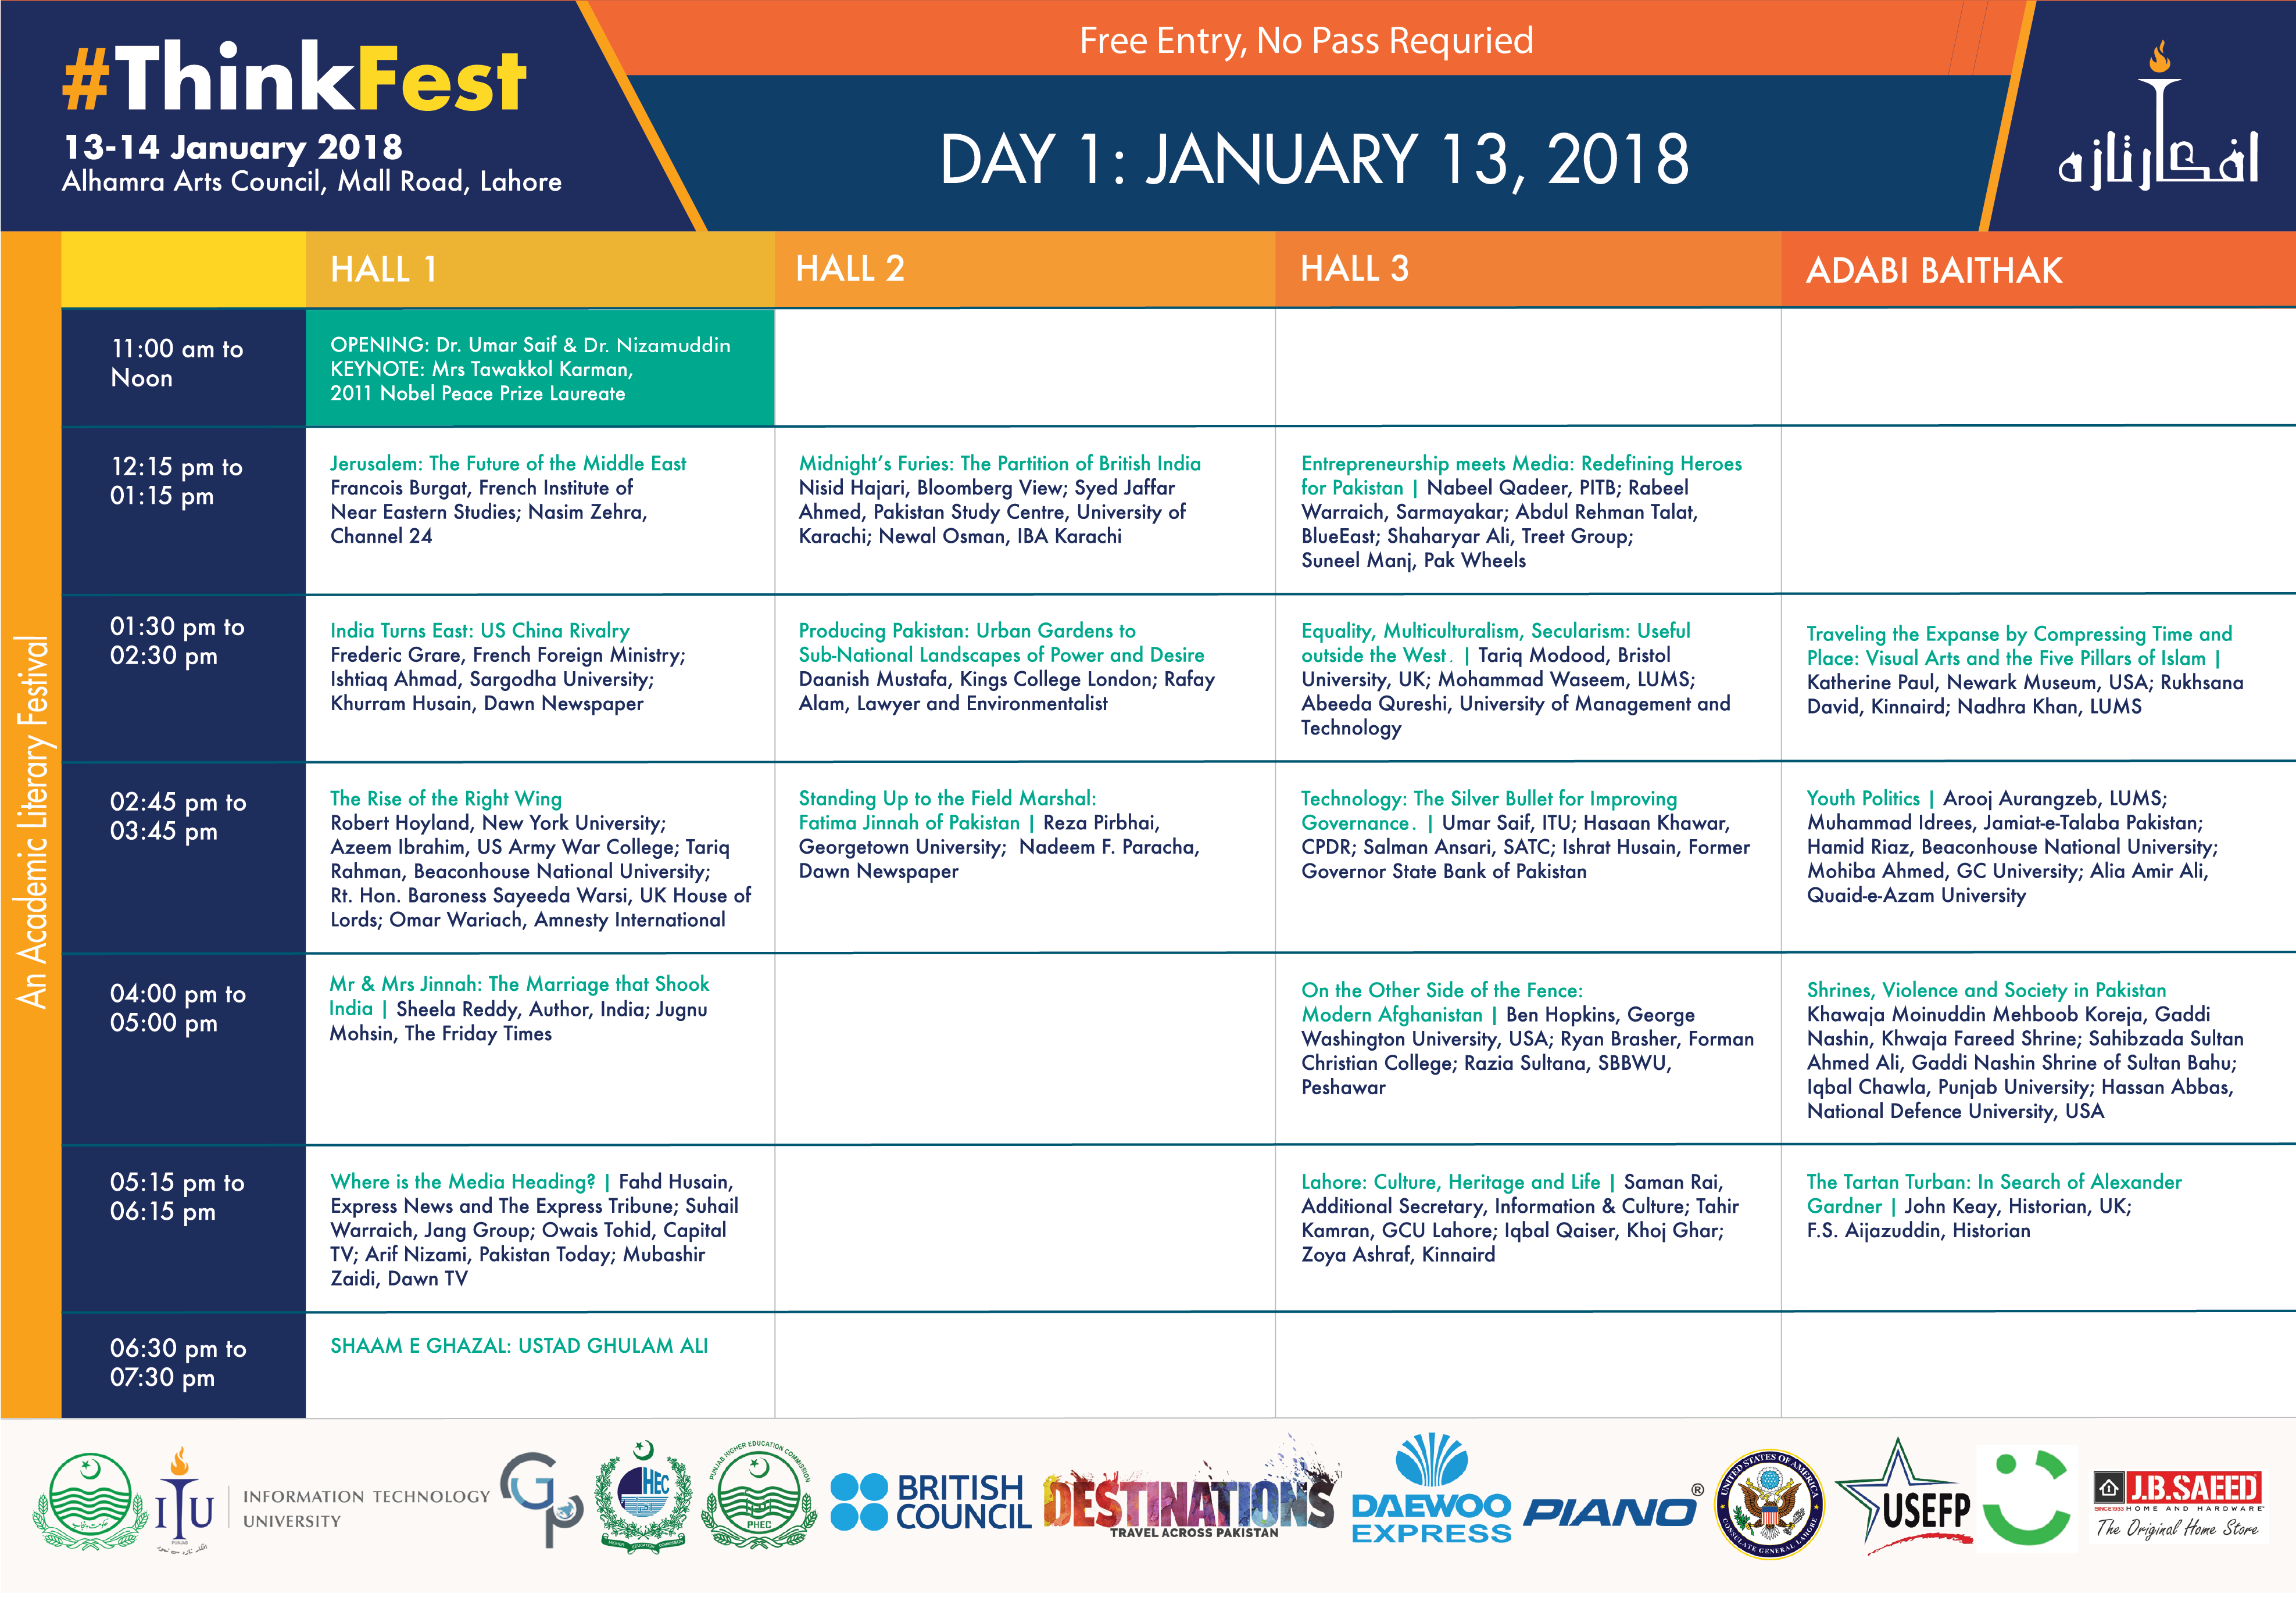 thinkfest day 1 schedule